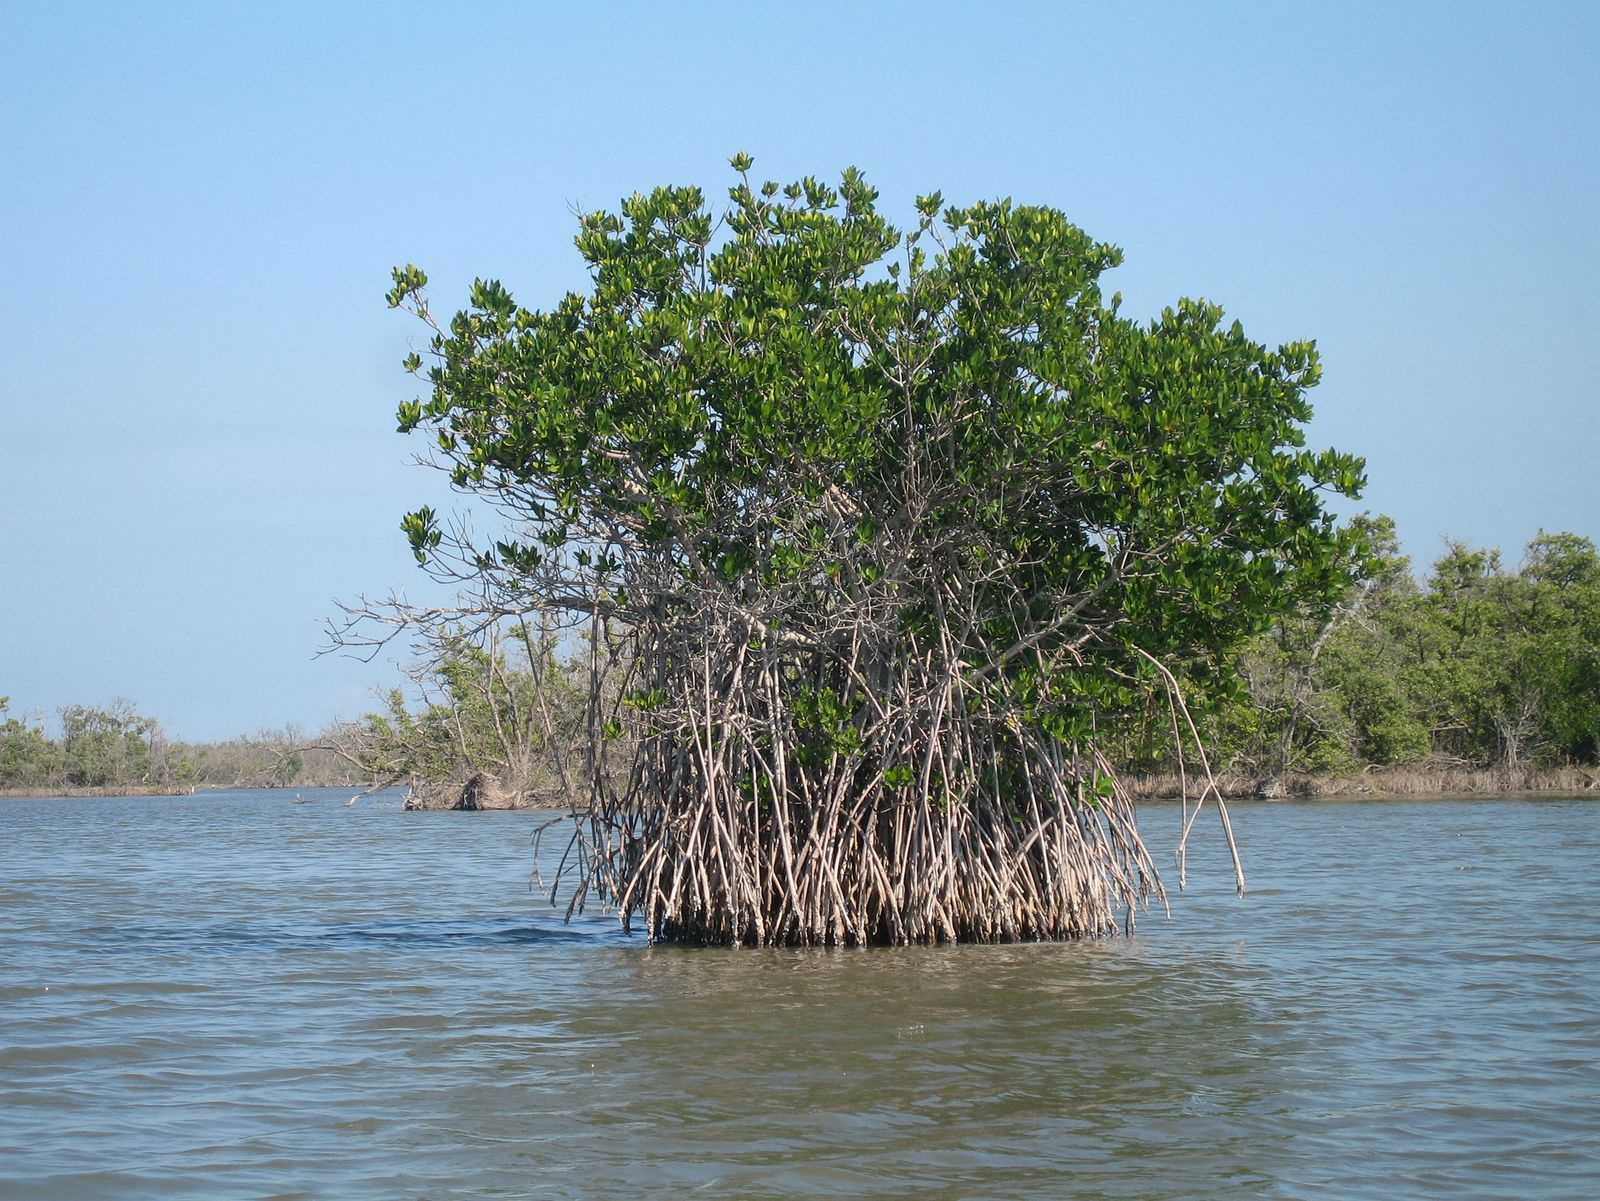 a study of the badu mangrove Climate, environment - wetland and atmospheric ecosystem case study in australia.